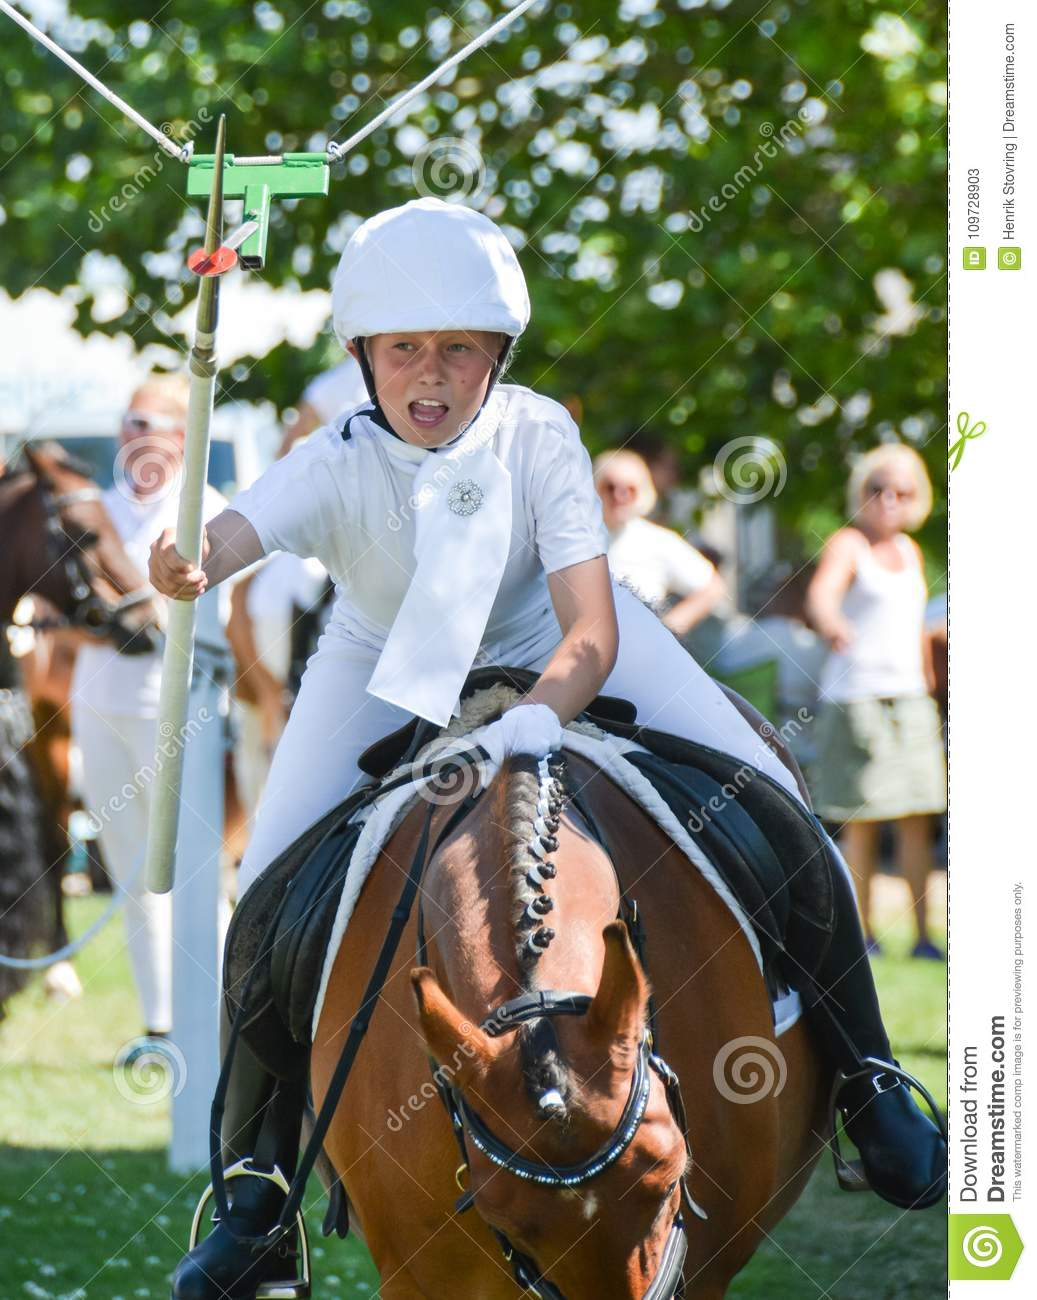 Got it! - young girl on horse at ring riding